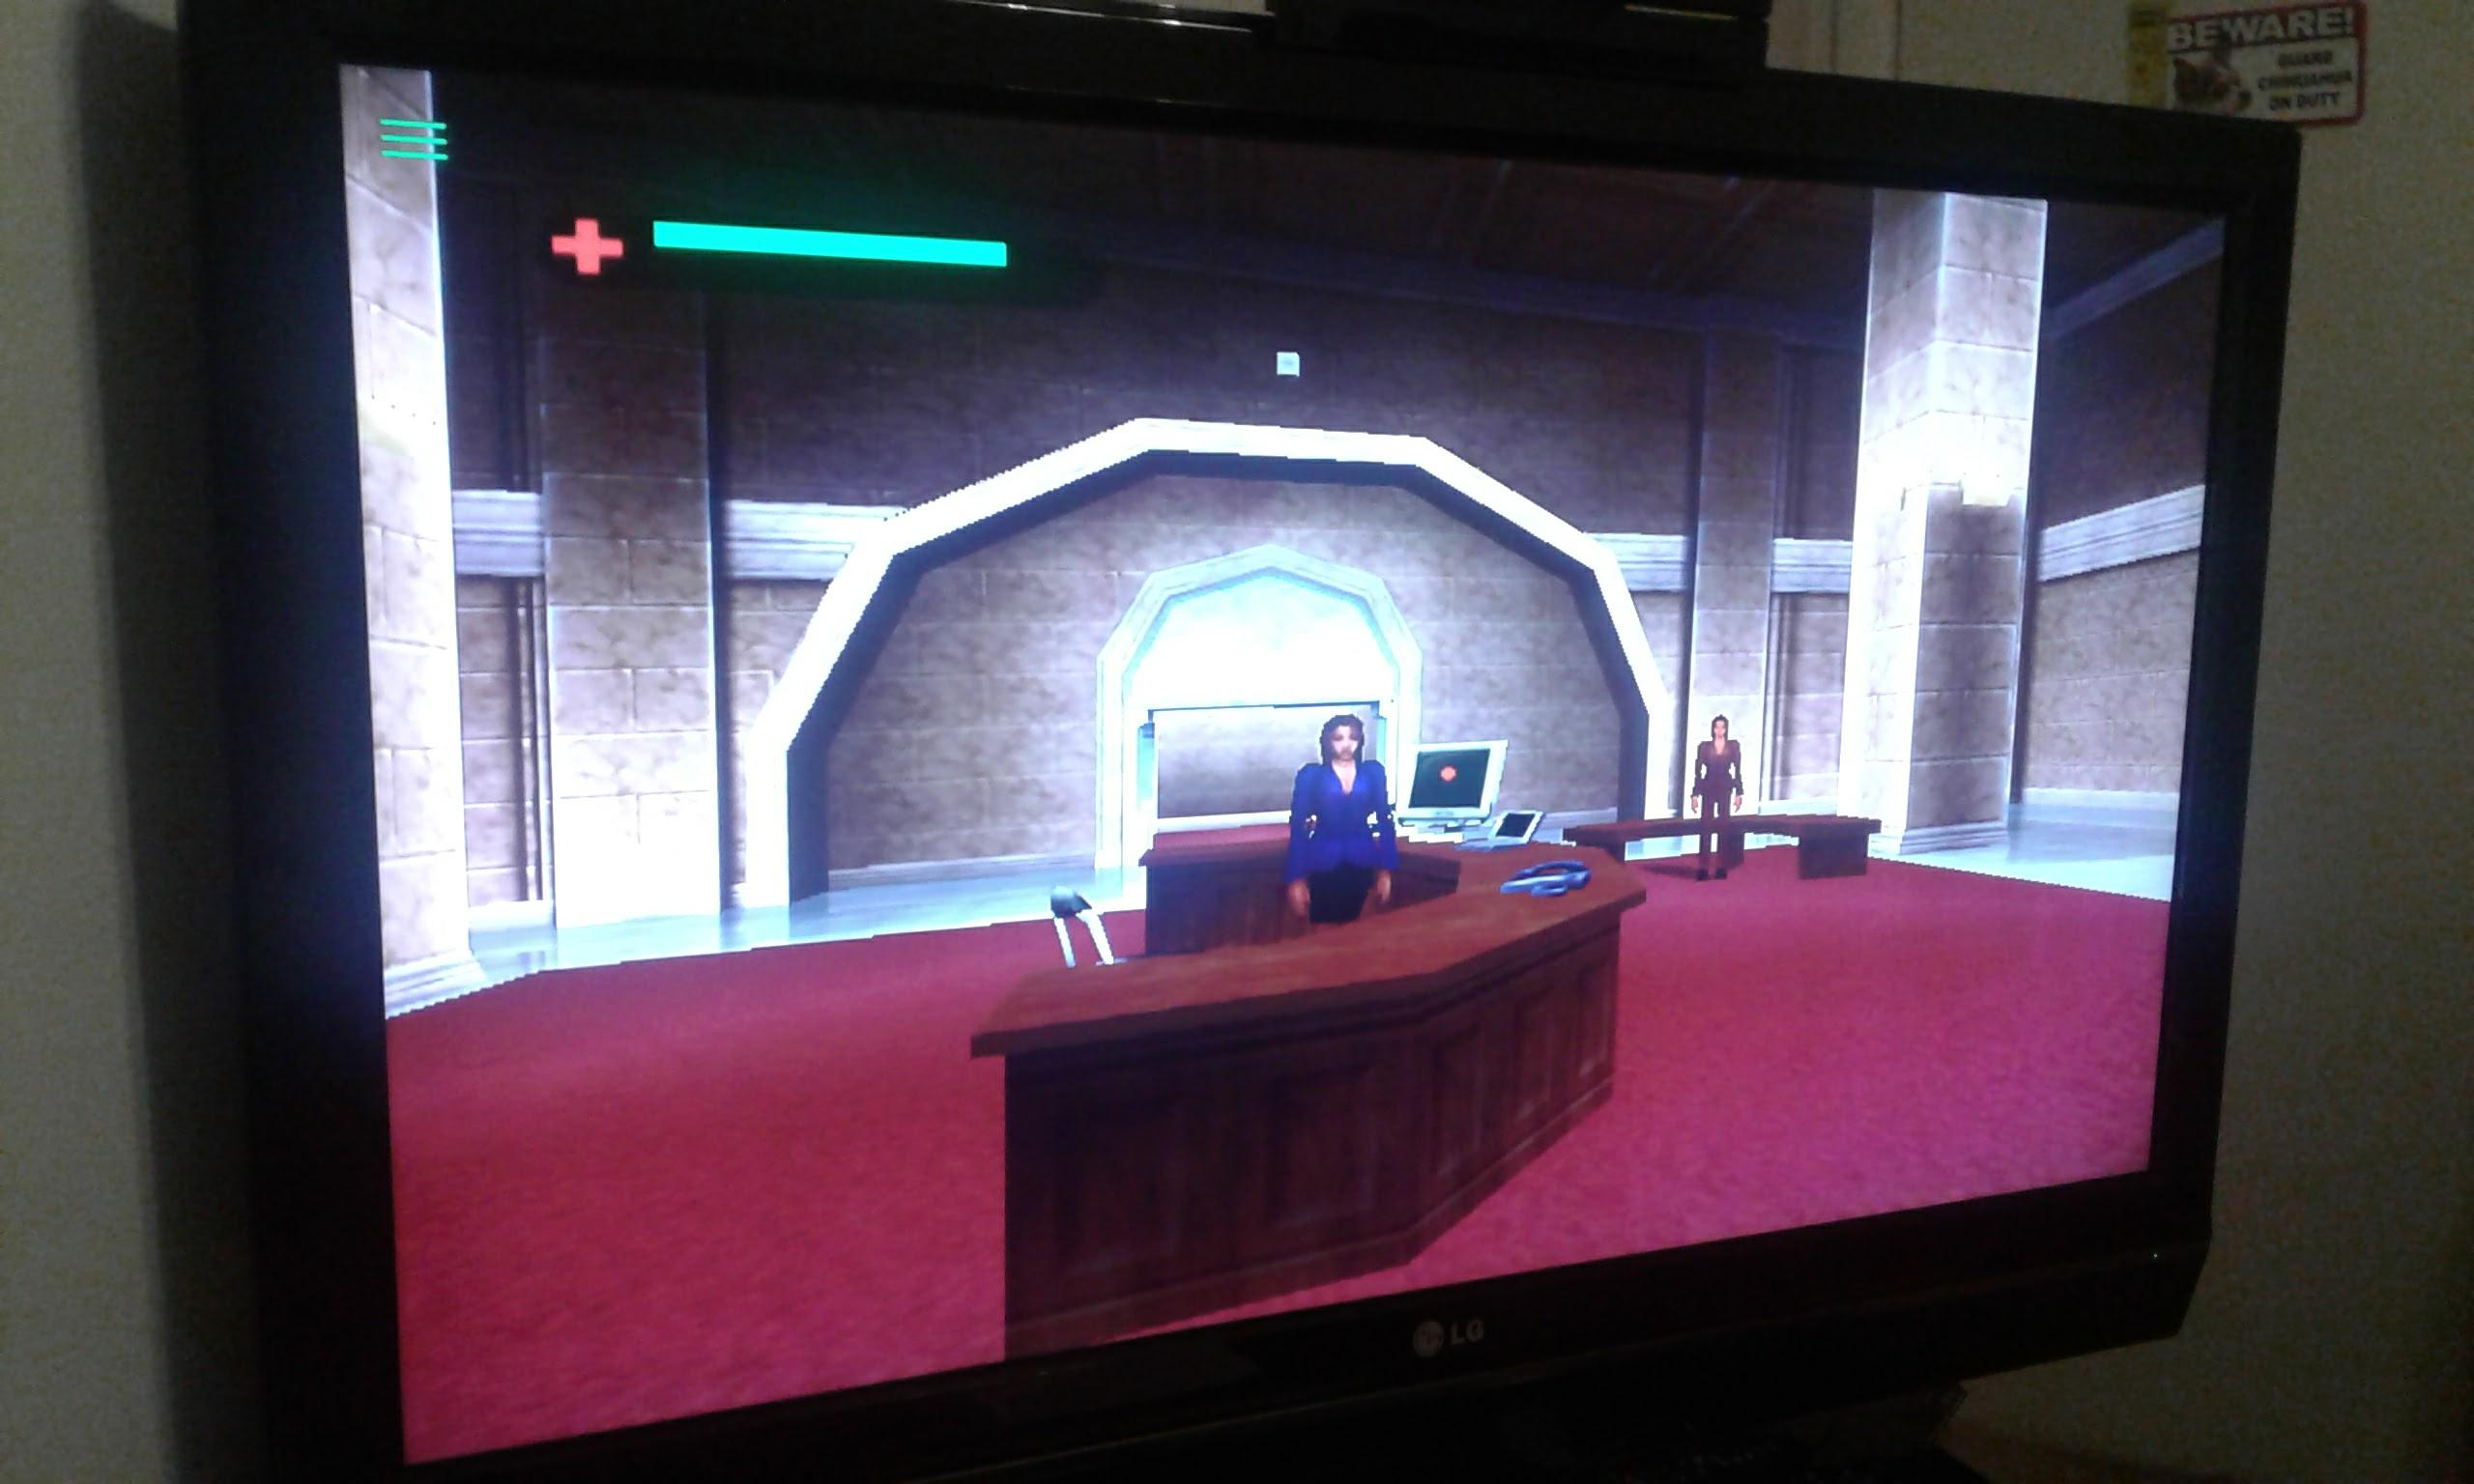 N64 Emulator Now Live On Xbox One, Heres How To Get It kE4IypG